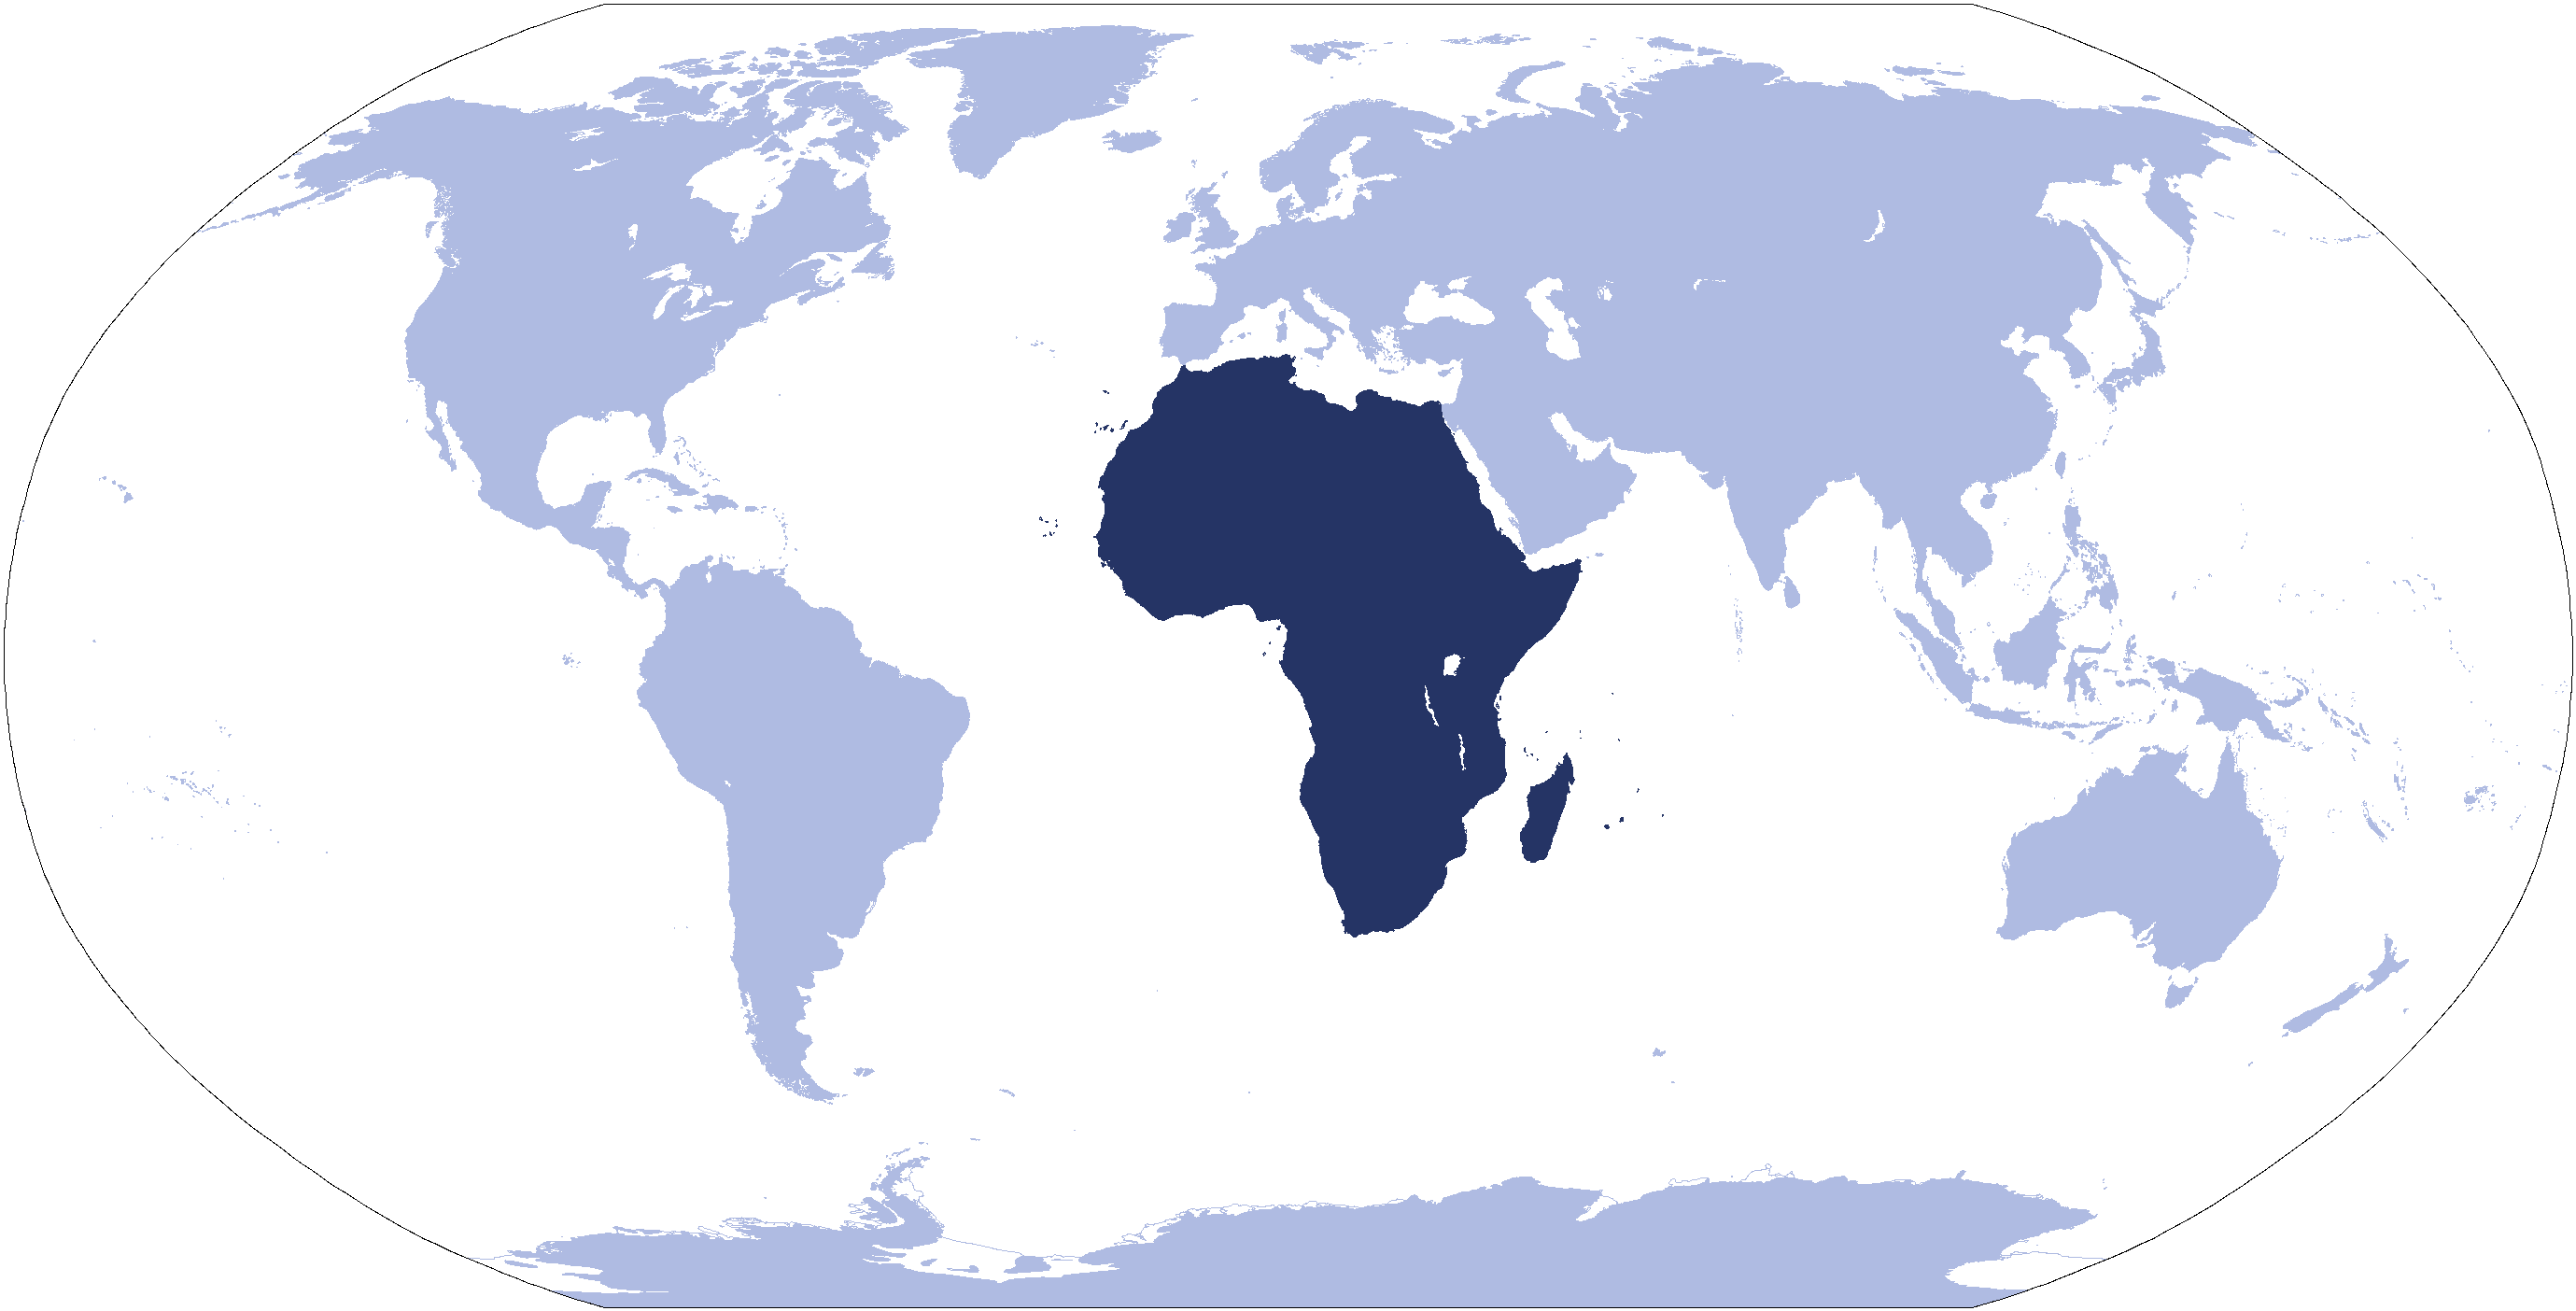 Where is Africa located 80